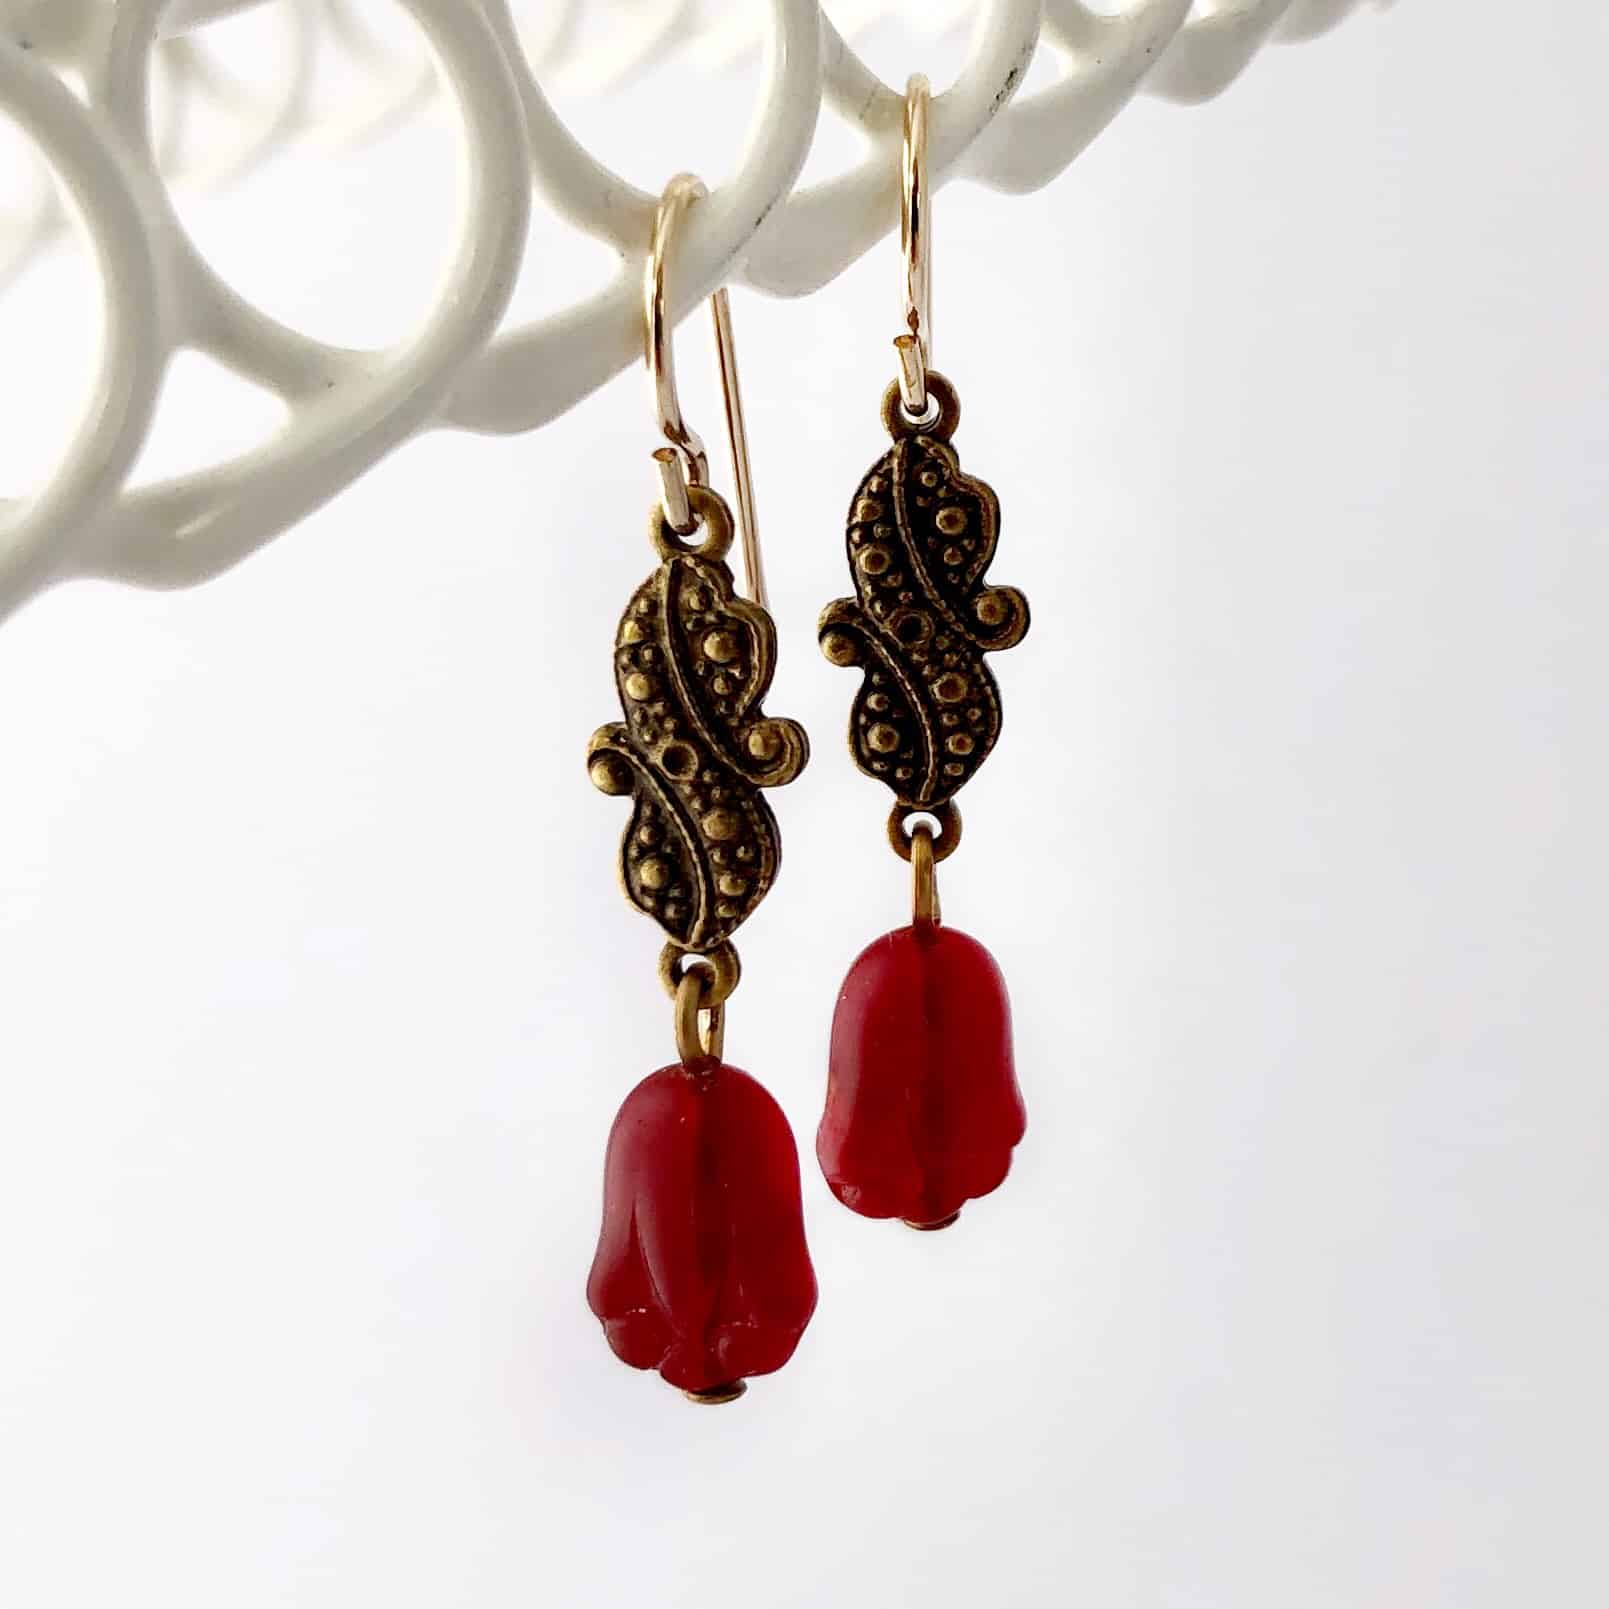 vintage-czech-glass-tulip-earrings-by-my-vintage-obsession-by-myvintageobsession2020